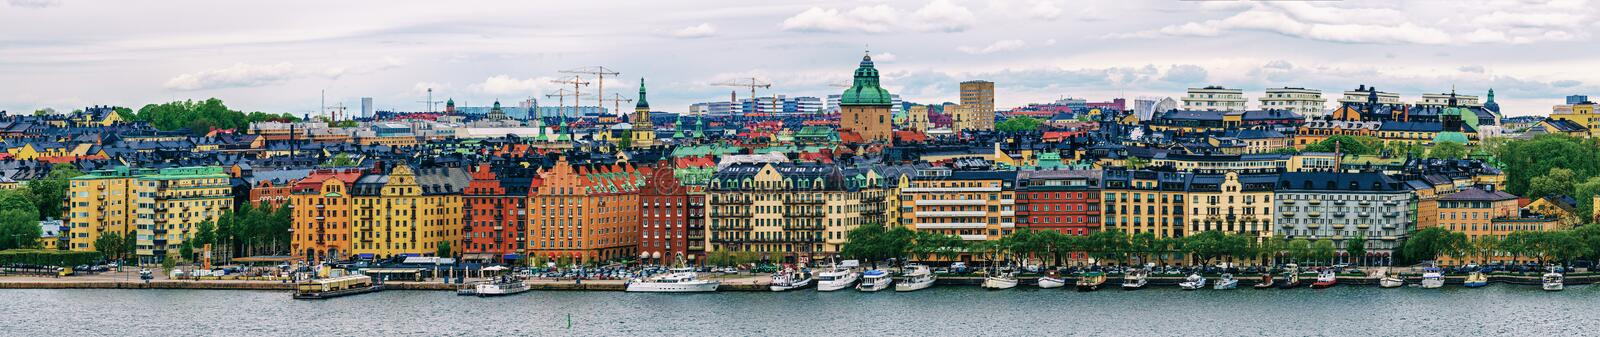 Stockholm city view royalty free stock photo